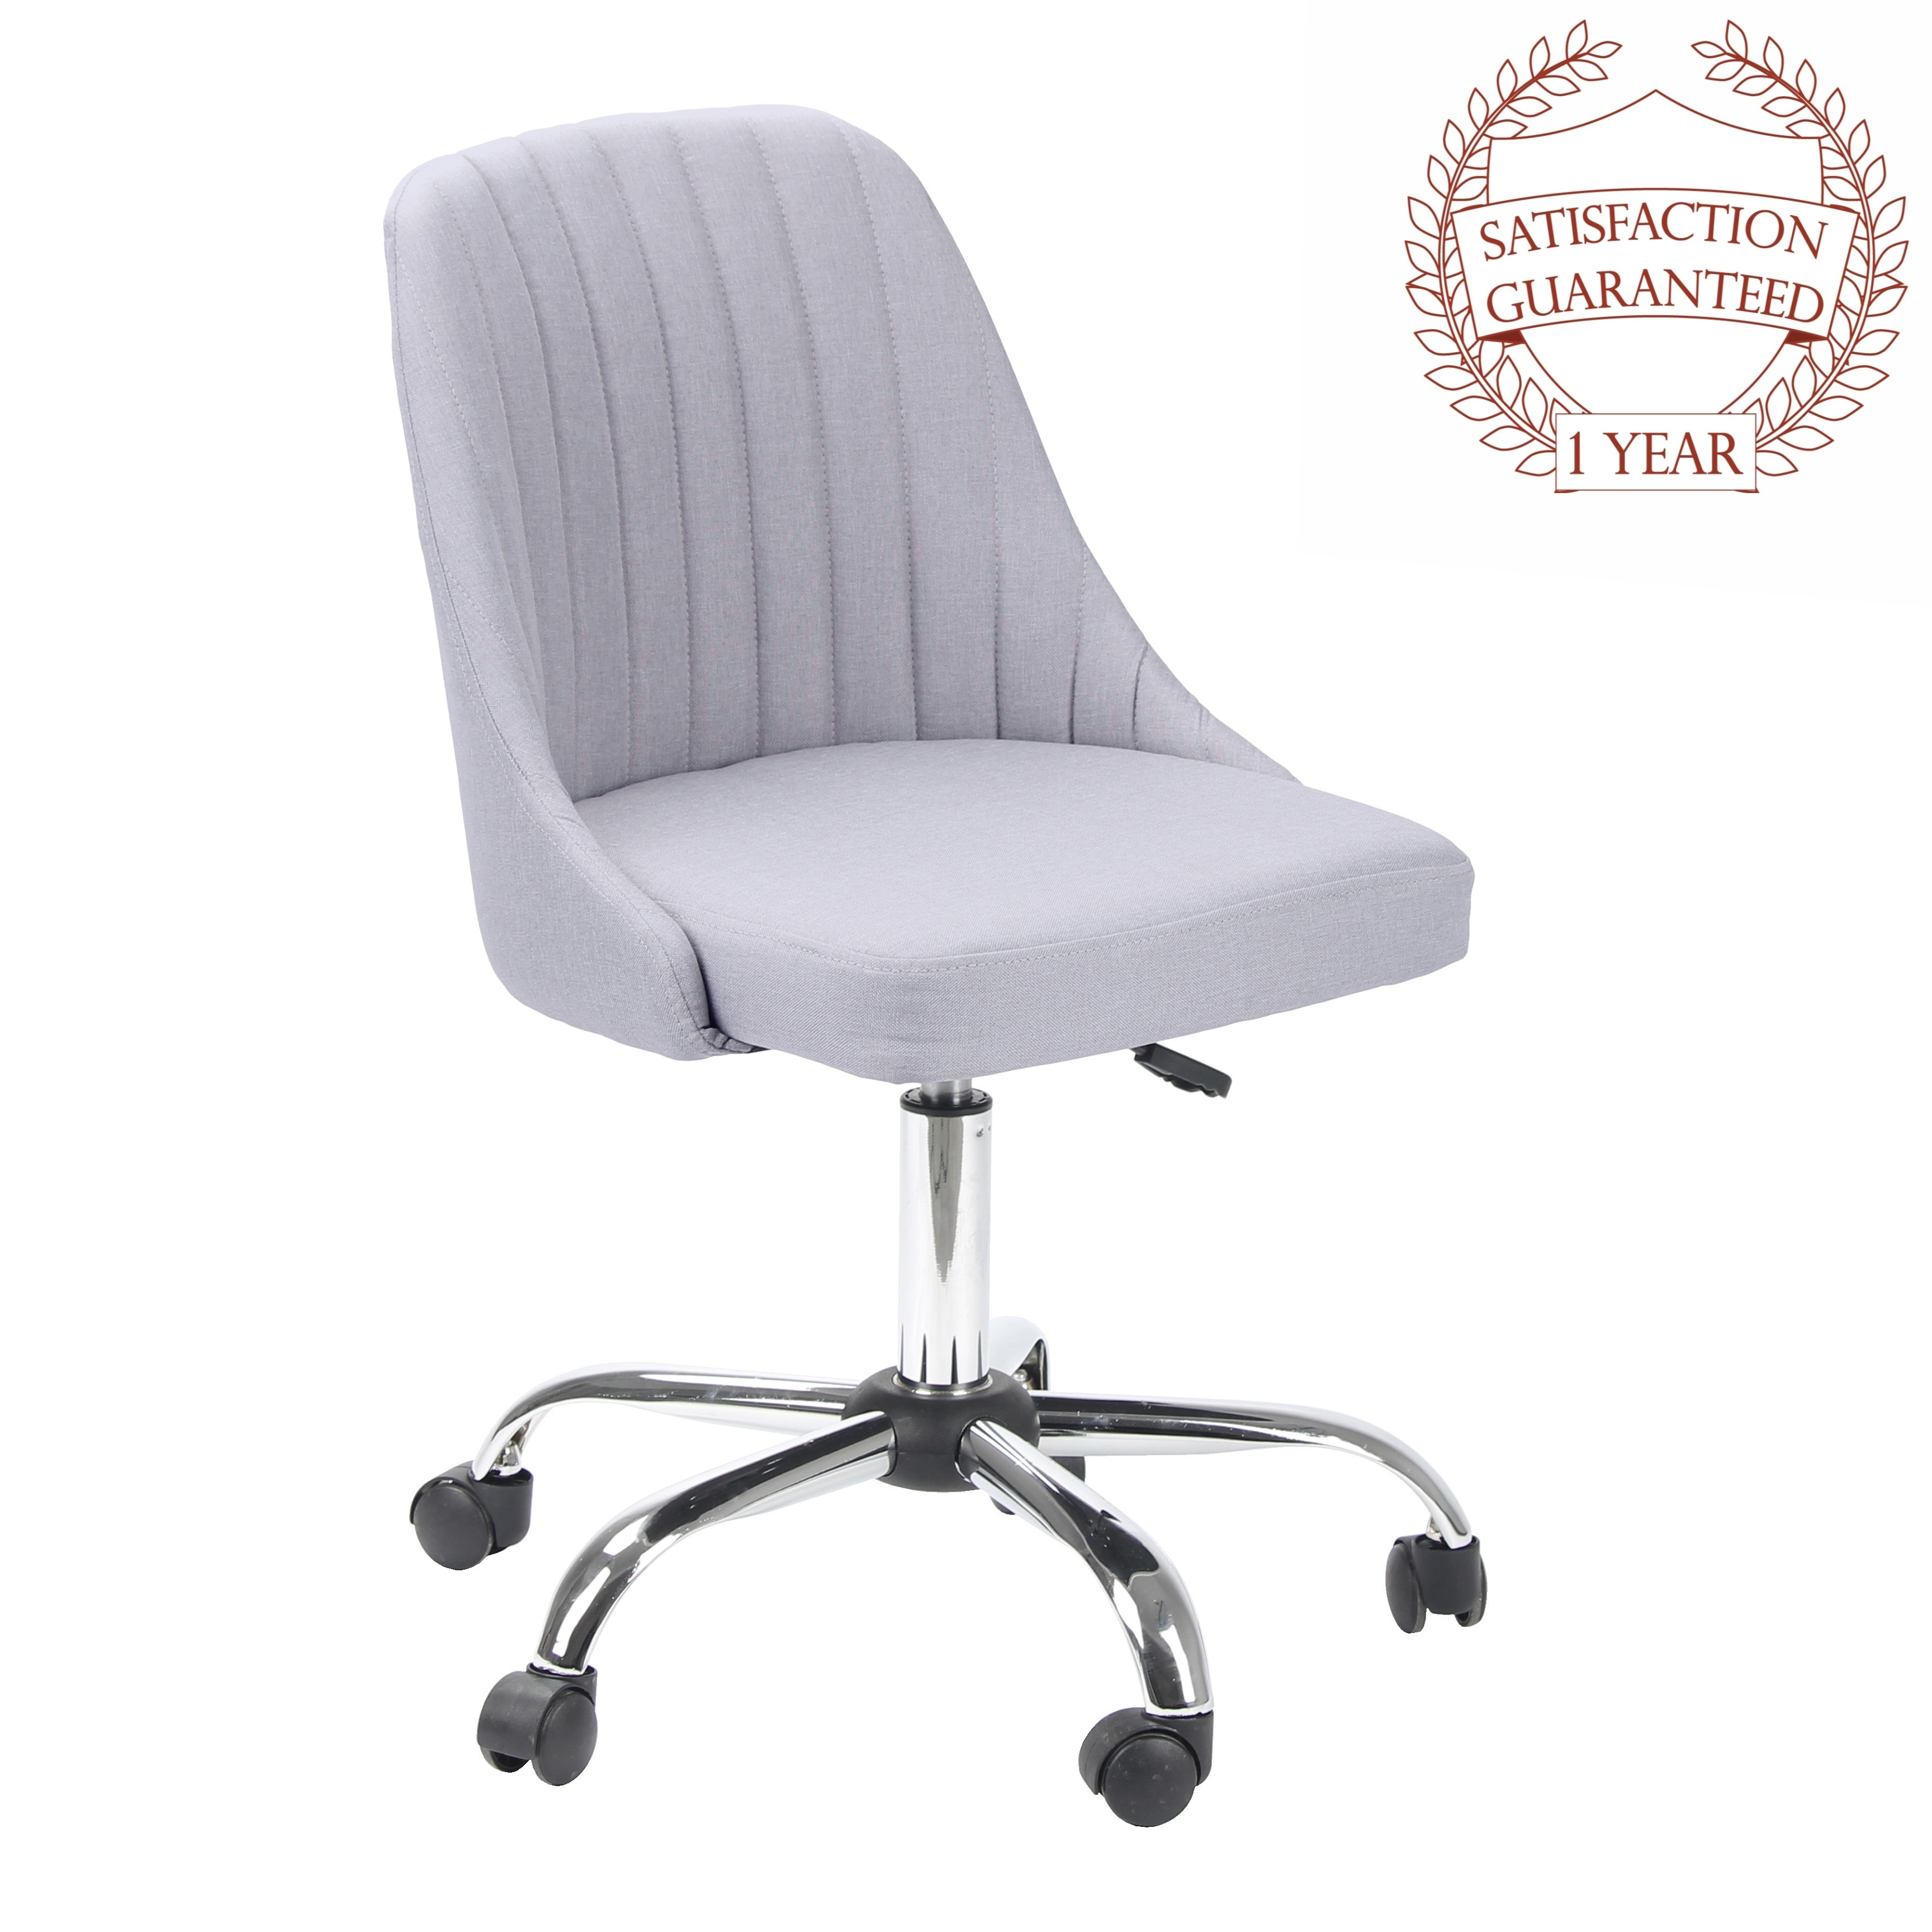 Porthos Home Office Chairs Deluxe Quality Ergonomic Height Adjule On Free Shipping Today 22174745